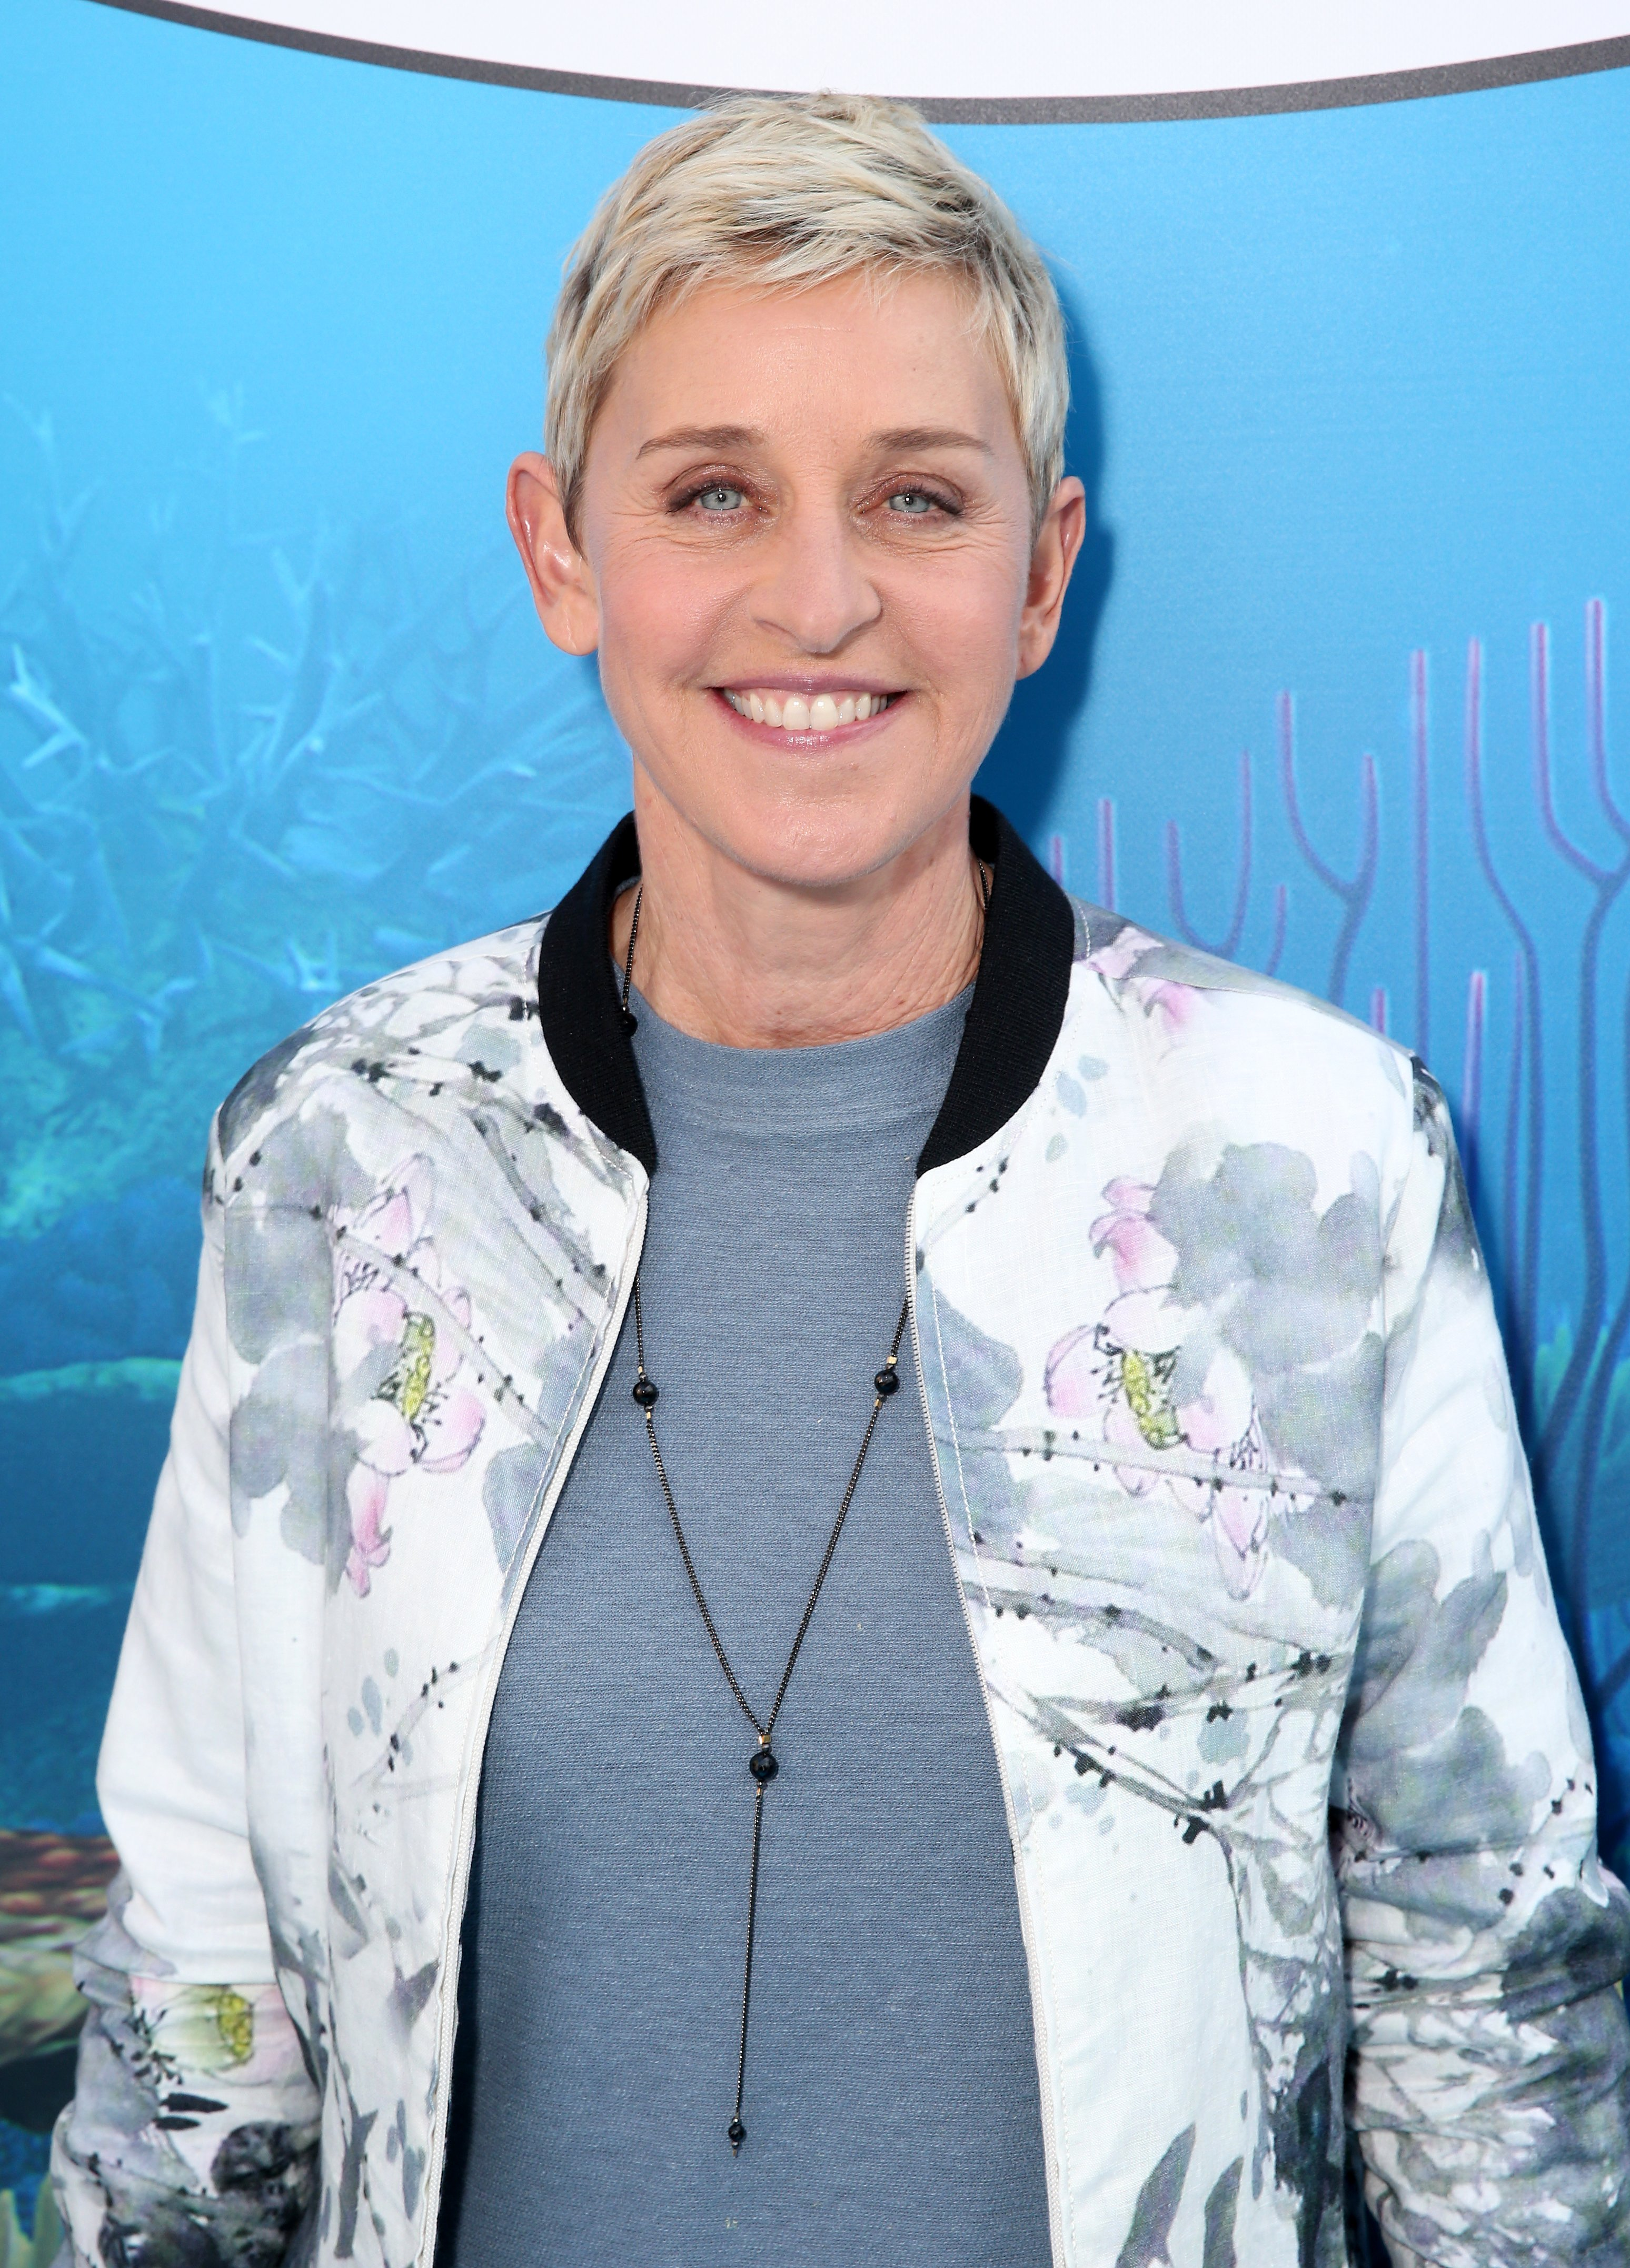 """Ellen DeGeneres attends the premiere of """"Finding Dory"""" in Hollywood, California on June 8, 2016 